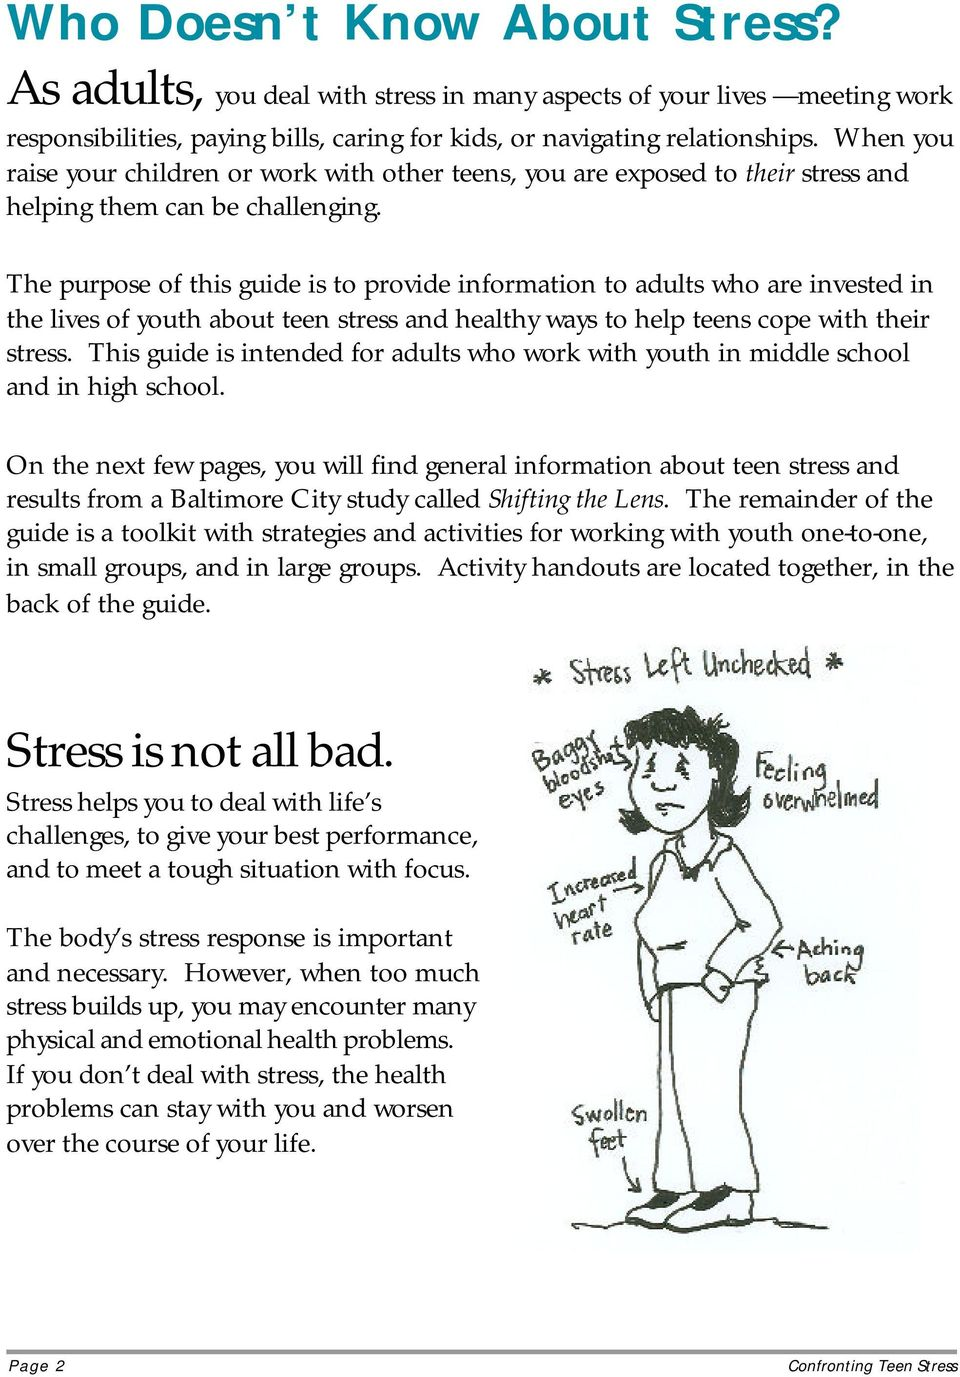 The purpose of this guide is to provide information to adults who are invested in the lives of youth about teen stress and healthy ways to help teens cope with their stress.